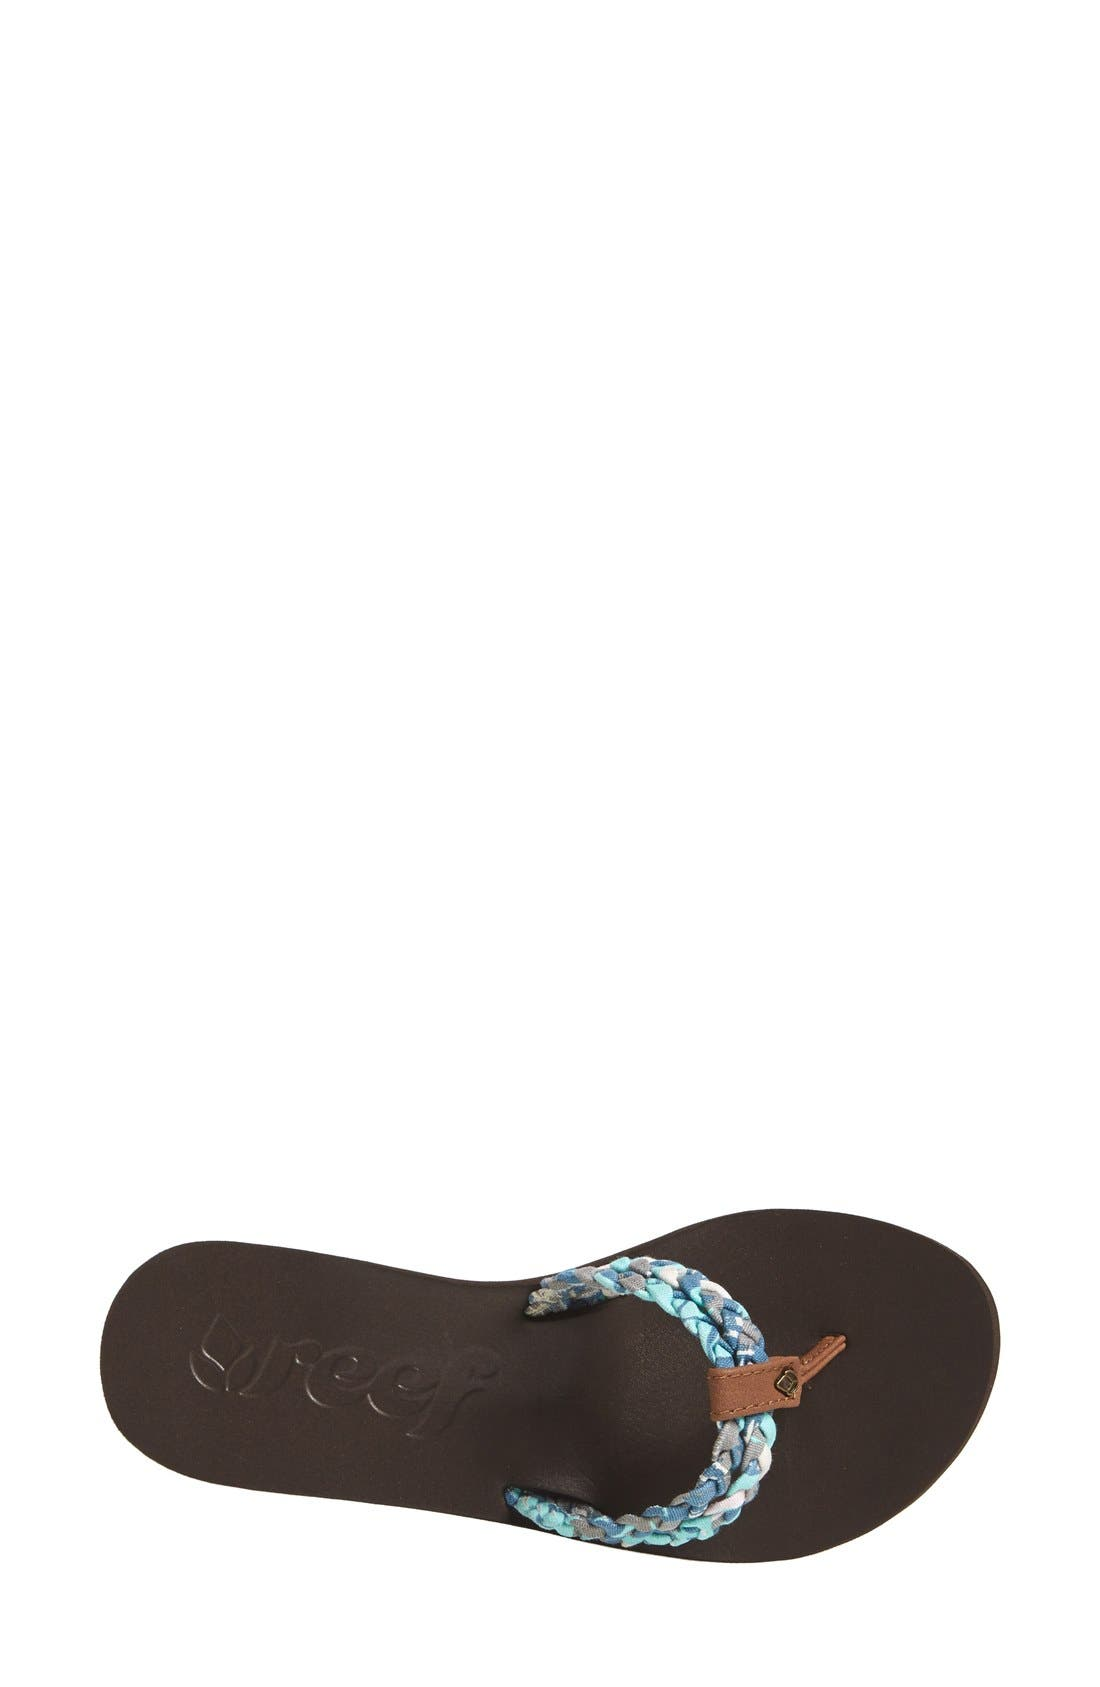 Alternate Image 4  - Reef 'Twisted Sky' Flip-Flop Thong Sandal (Women)